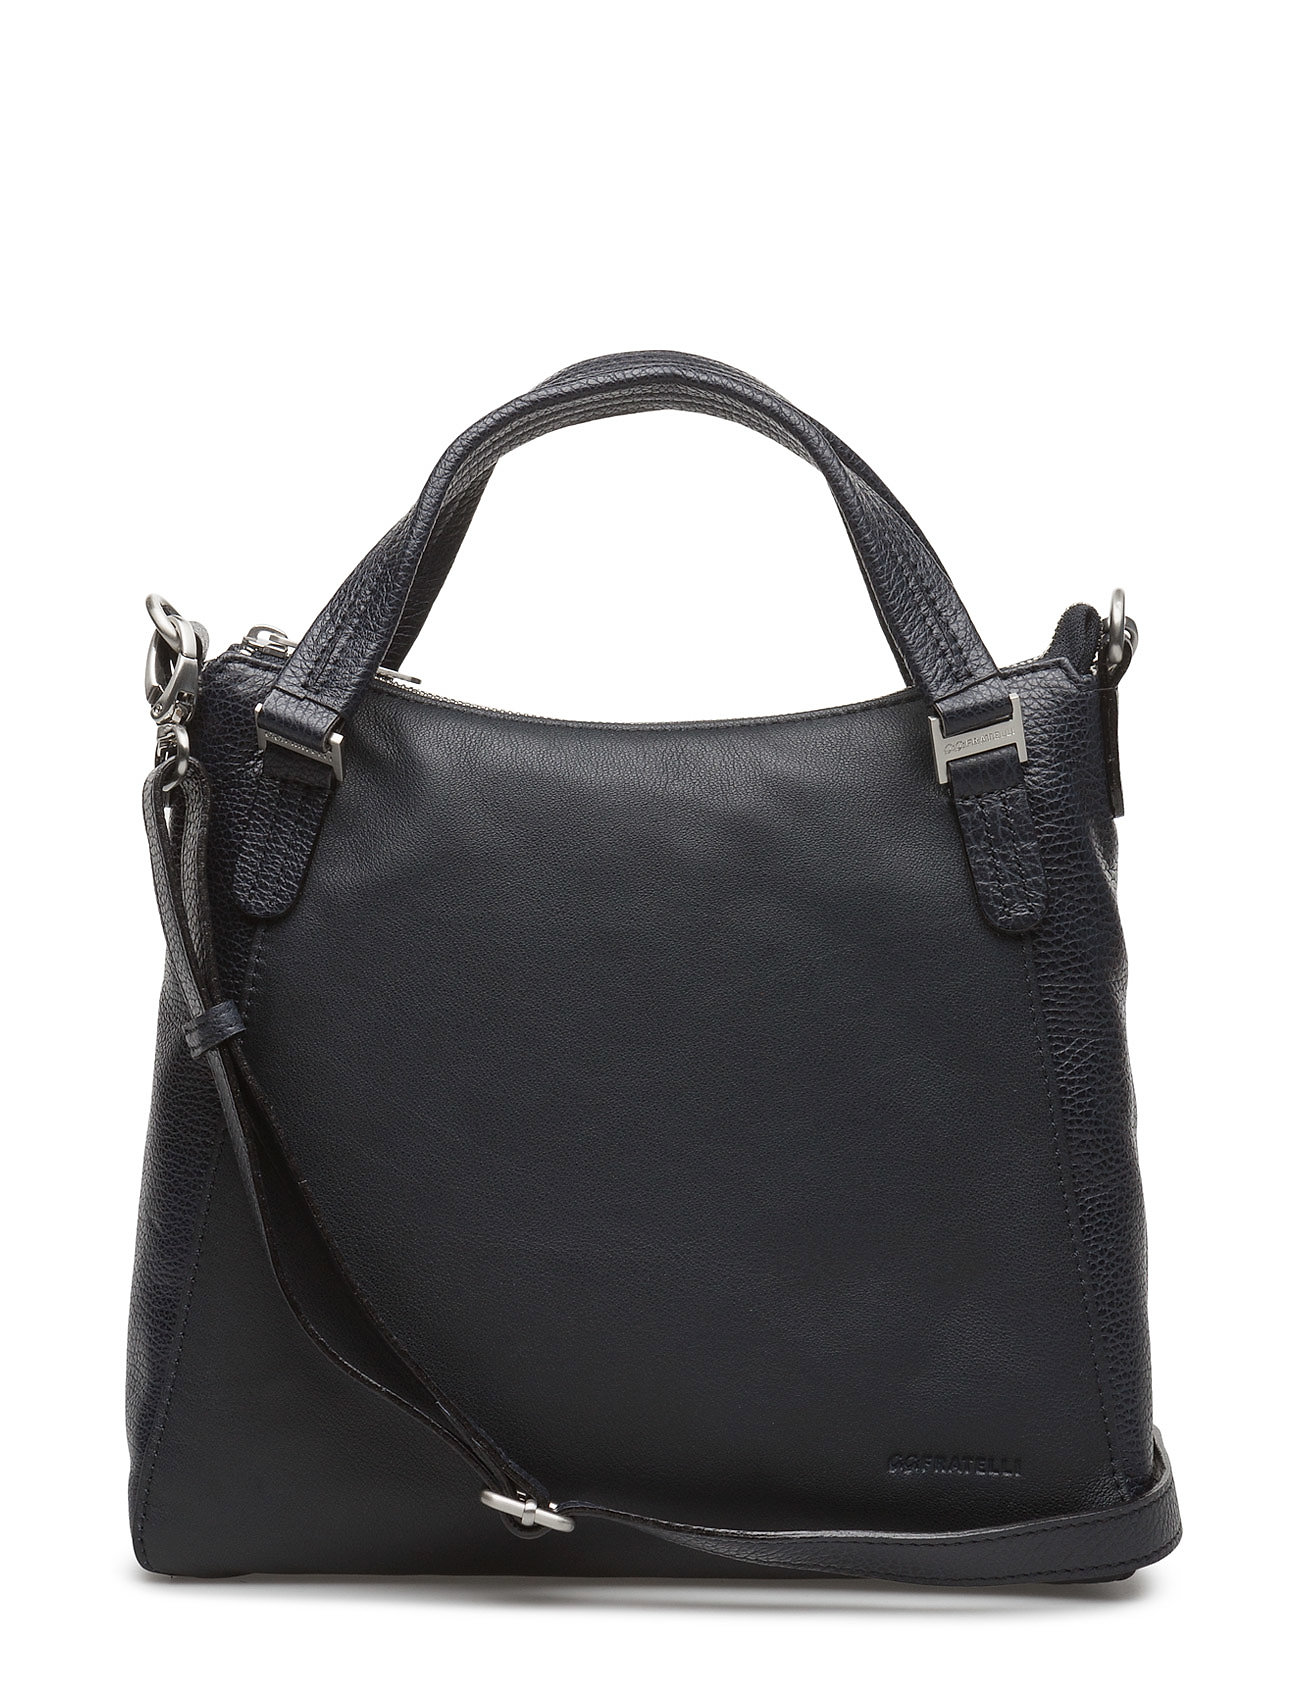 Elegance Hand/Shoulderbag GiGi Fratelli Shopper Påsar